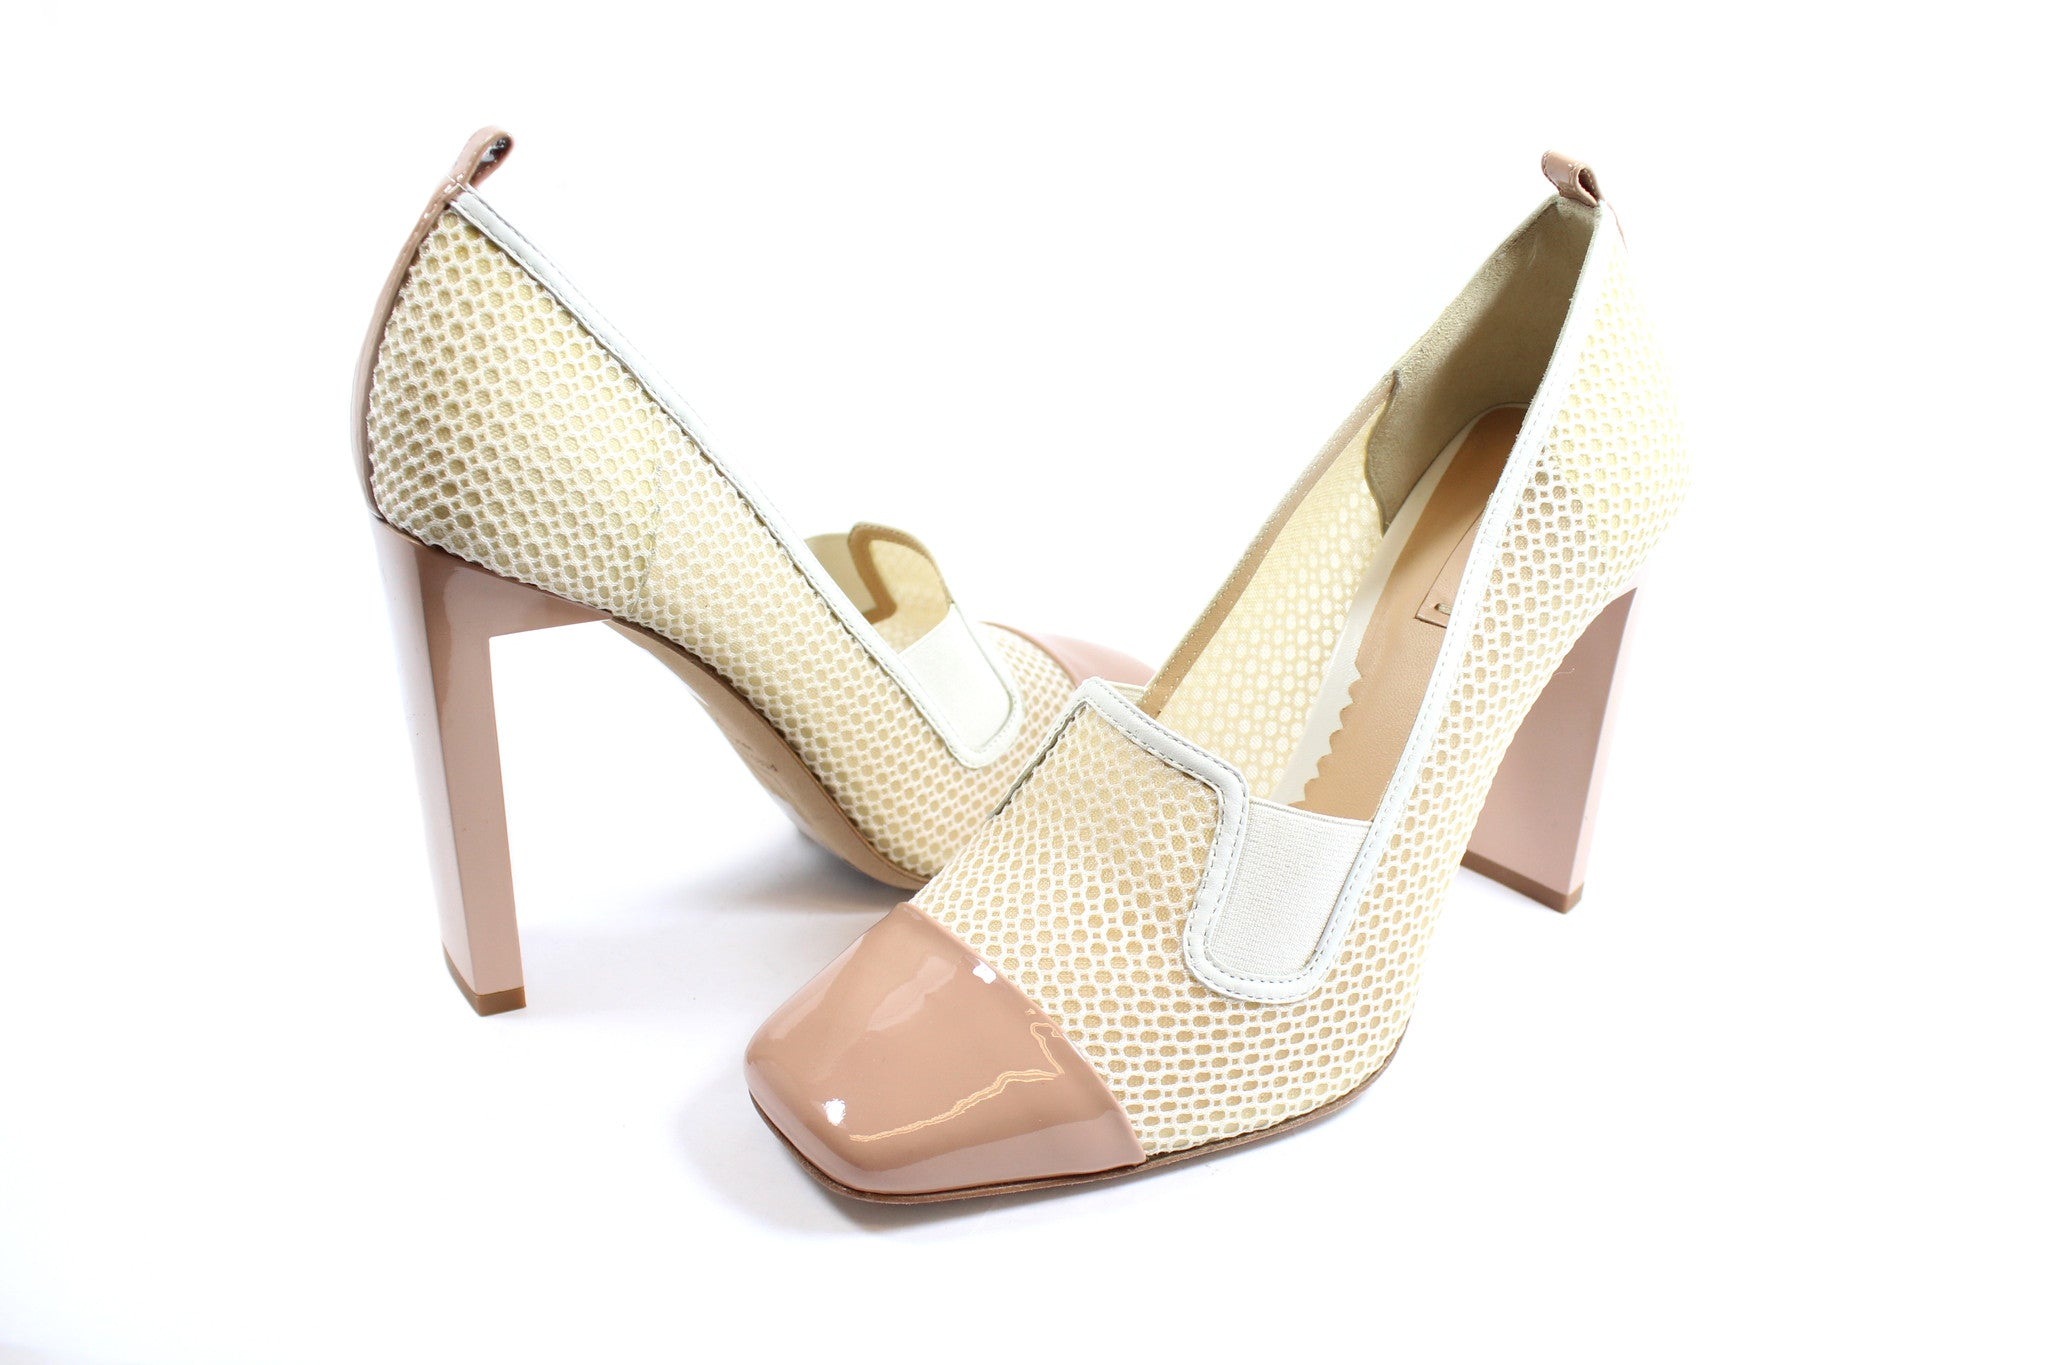 Reed Krakoff Mesh Atlas Nude and White Pumps (Size 38.5) - Encore Consignment - 3